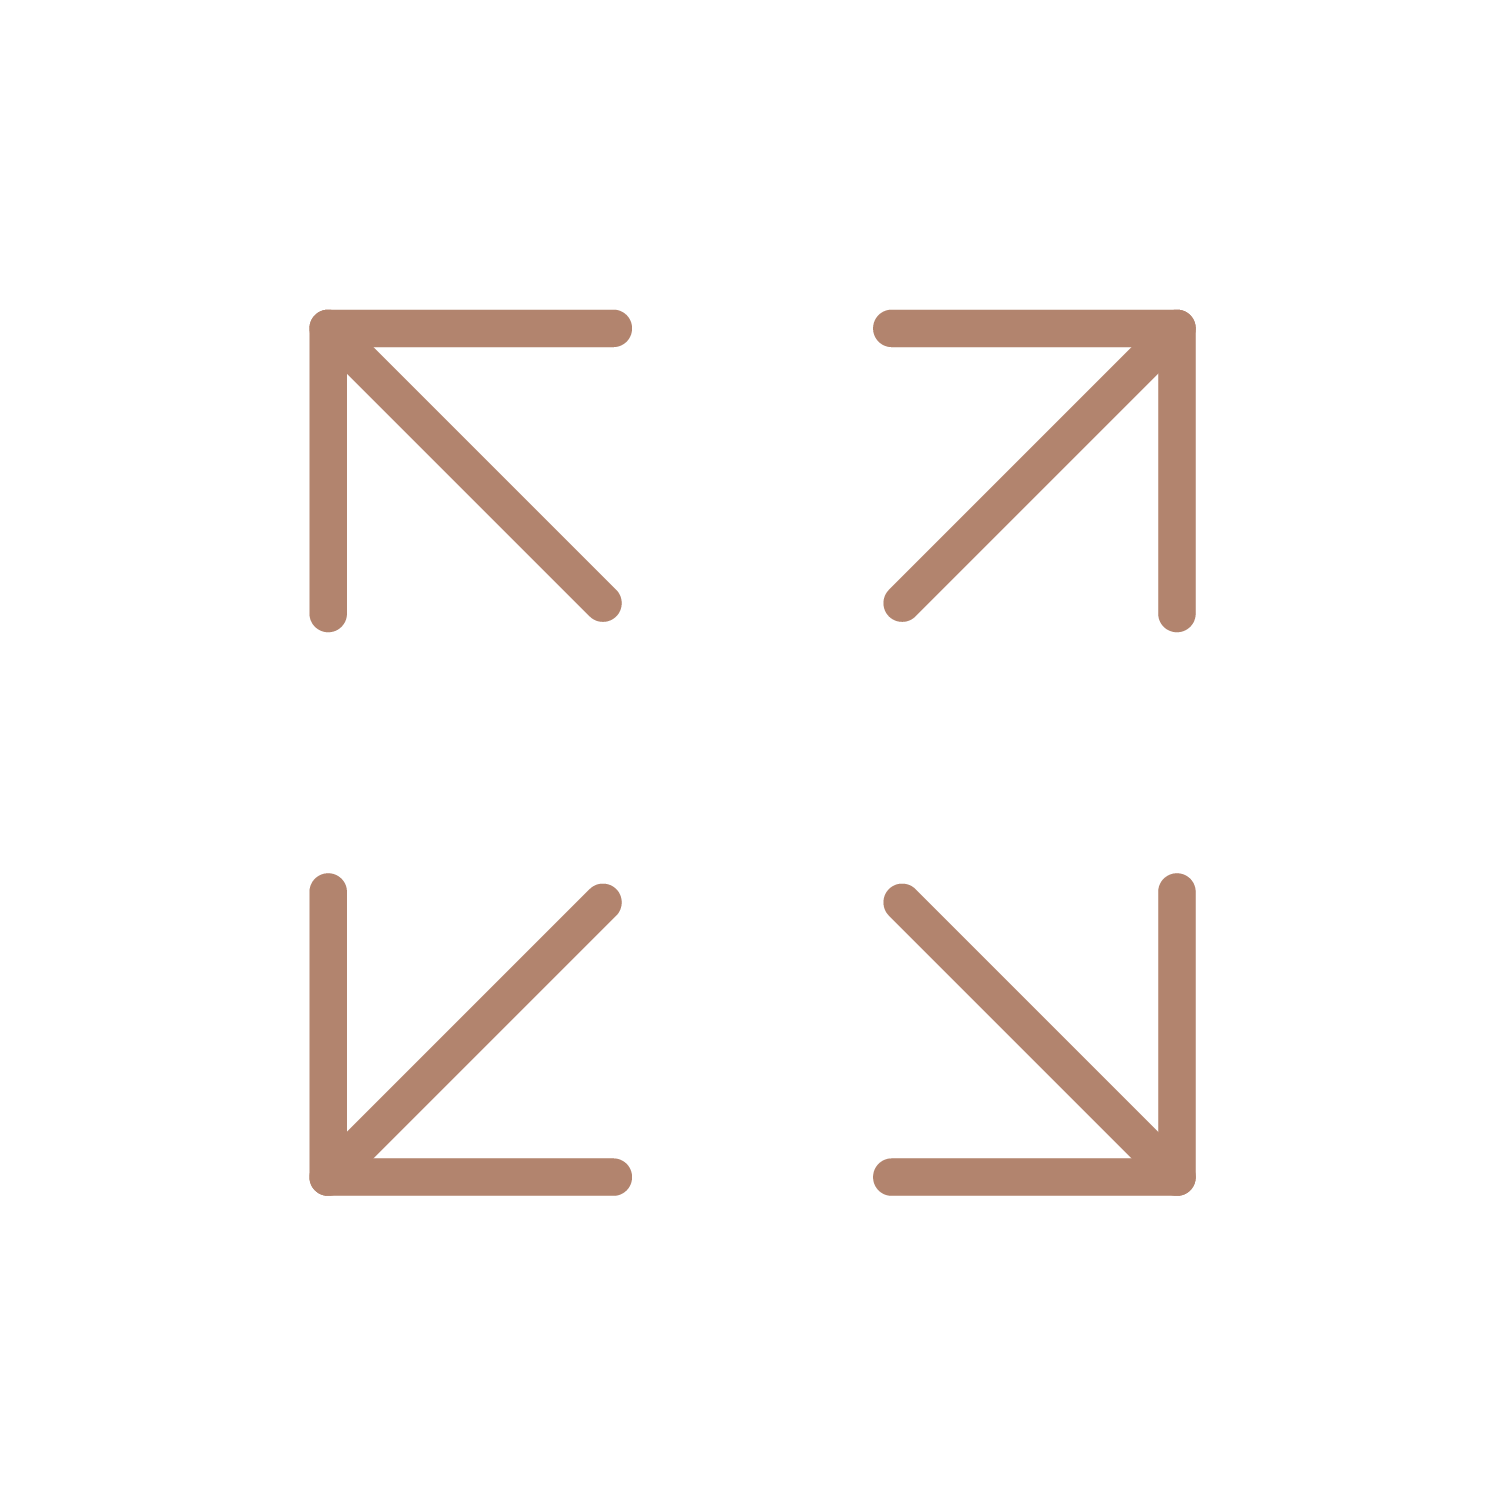 Four arrows pointing outwards in corners forming a square, denoting all sizes